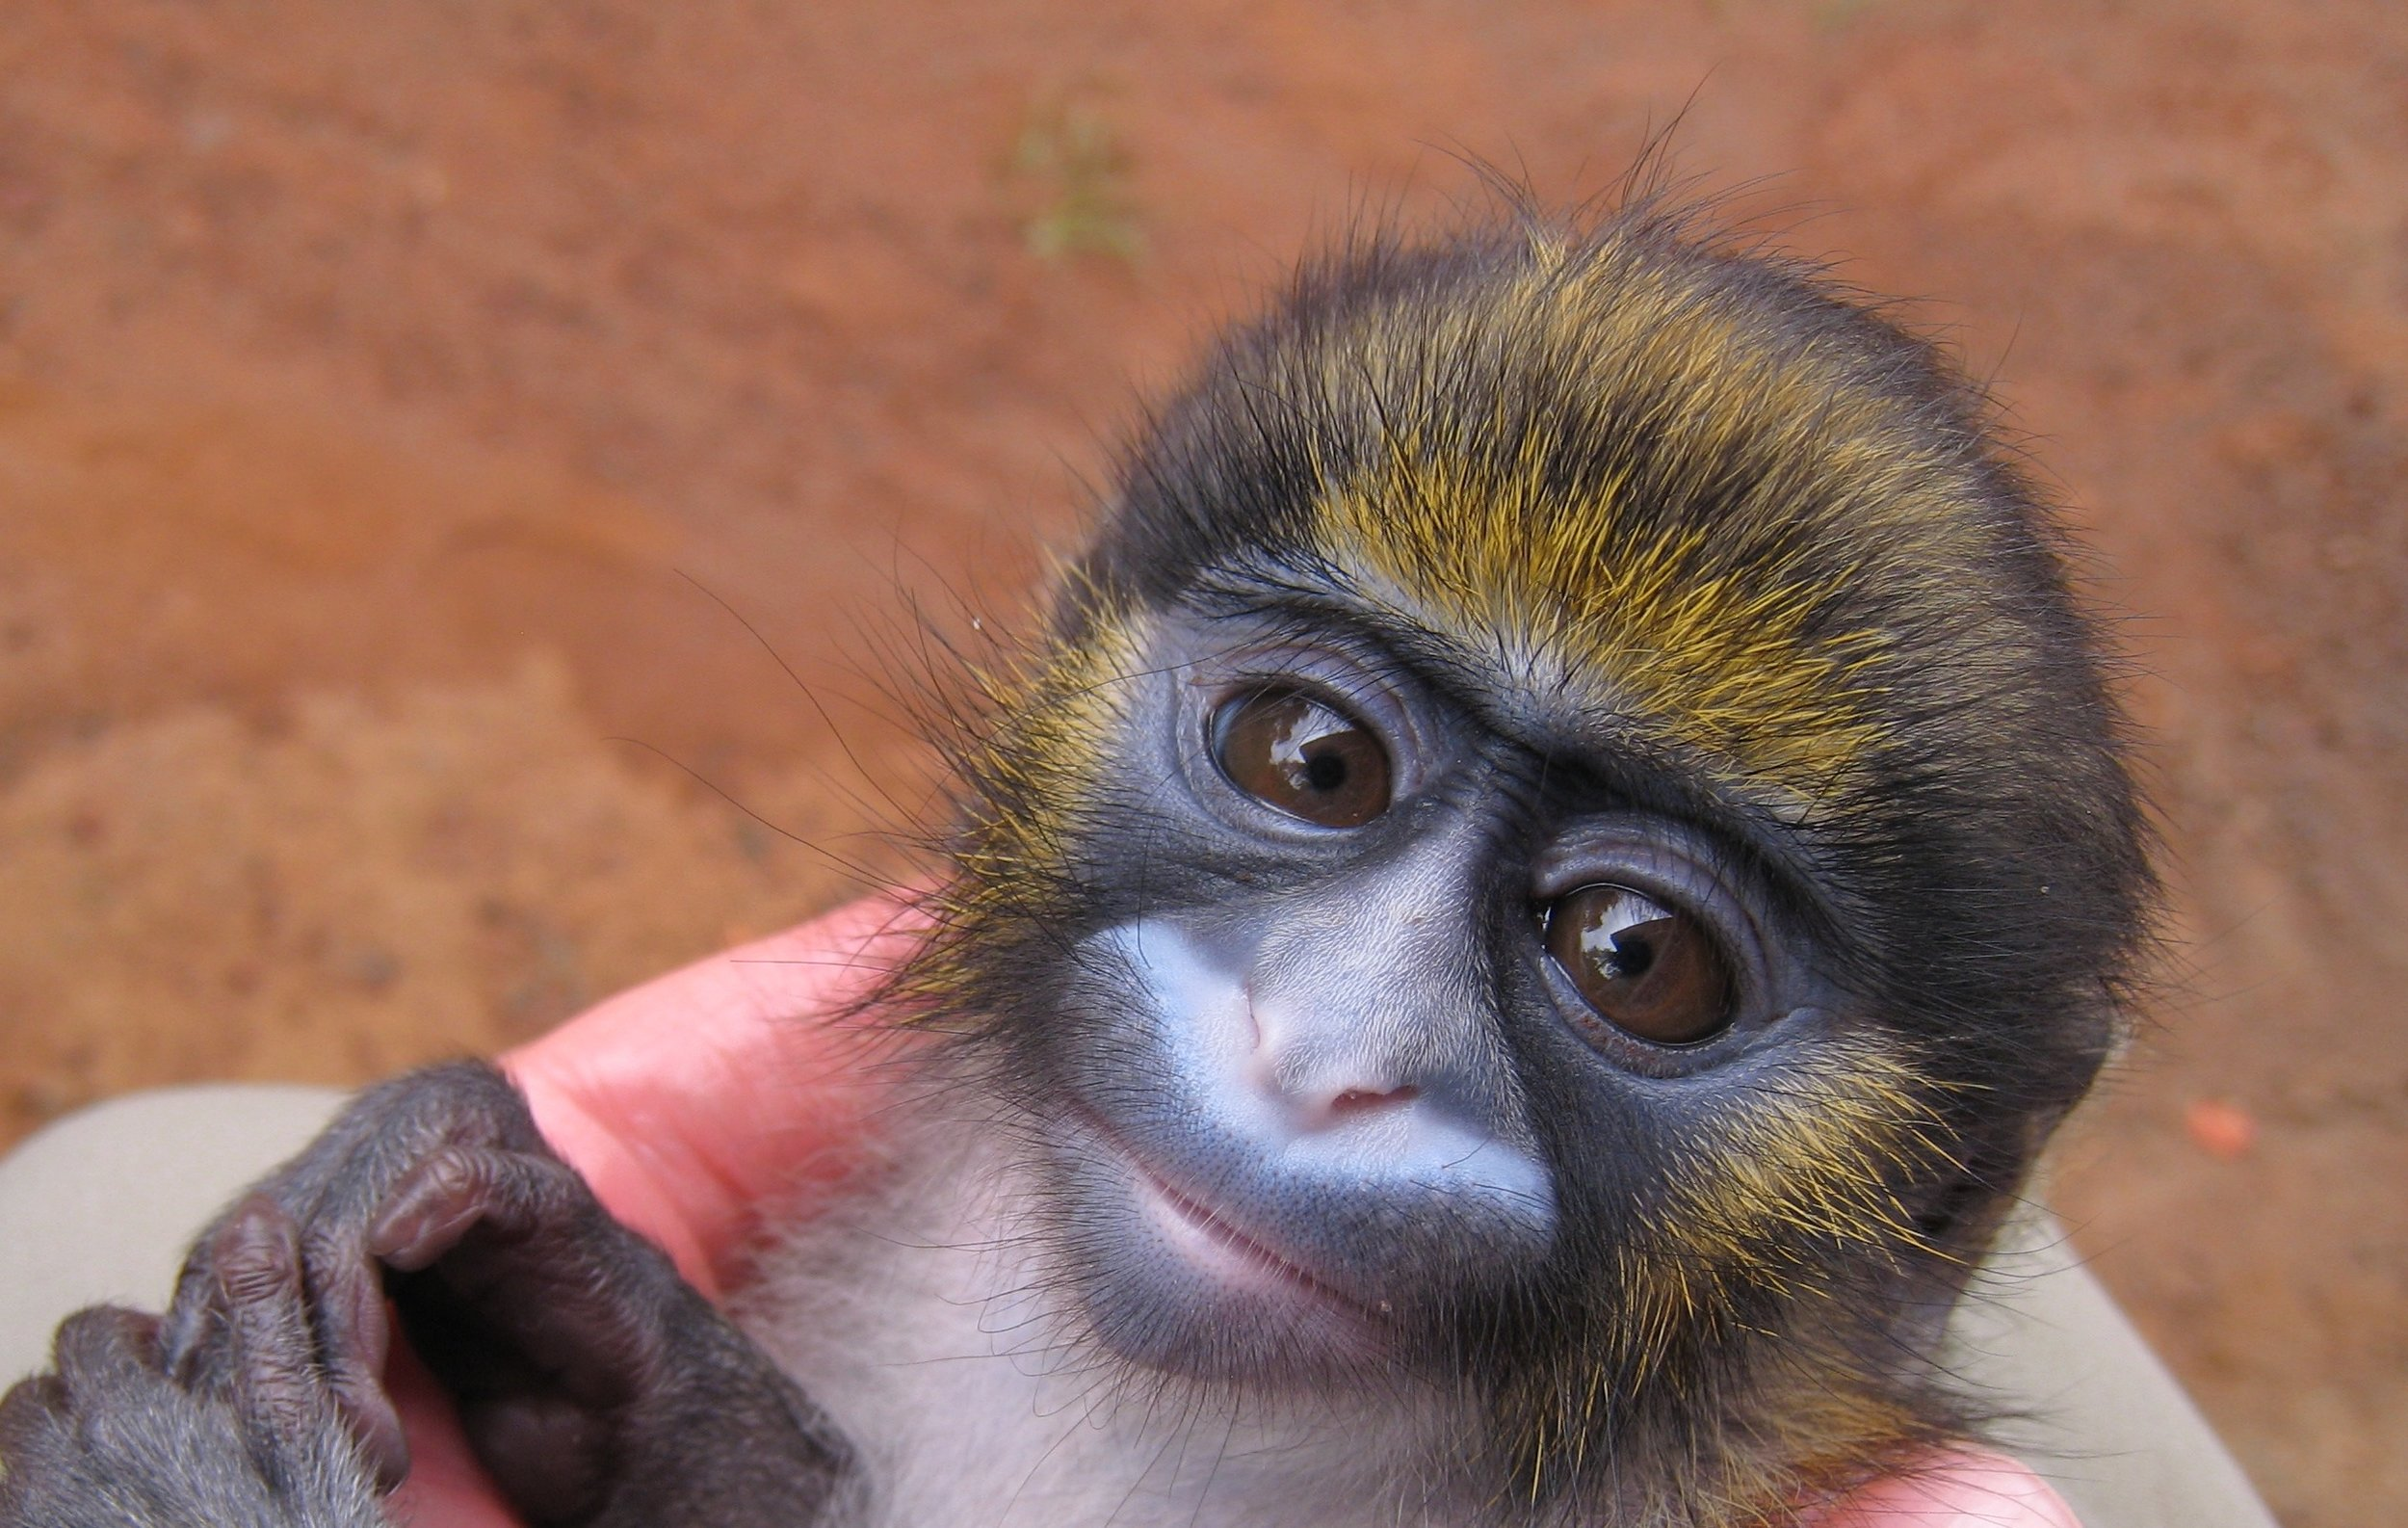 IT WAS A LIFE-ALTERING LOVE-AT- FIRST-sight-MOMENT WHEN ROBIN HUFFMAN MET THE FRIGHTENED ORPHANED INFANT NAMED MAASAI, A tiny MUSTACHED GUENON. IMAGE: ©ROBIN HUFFMAN.